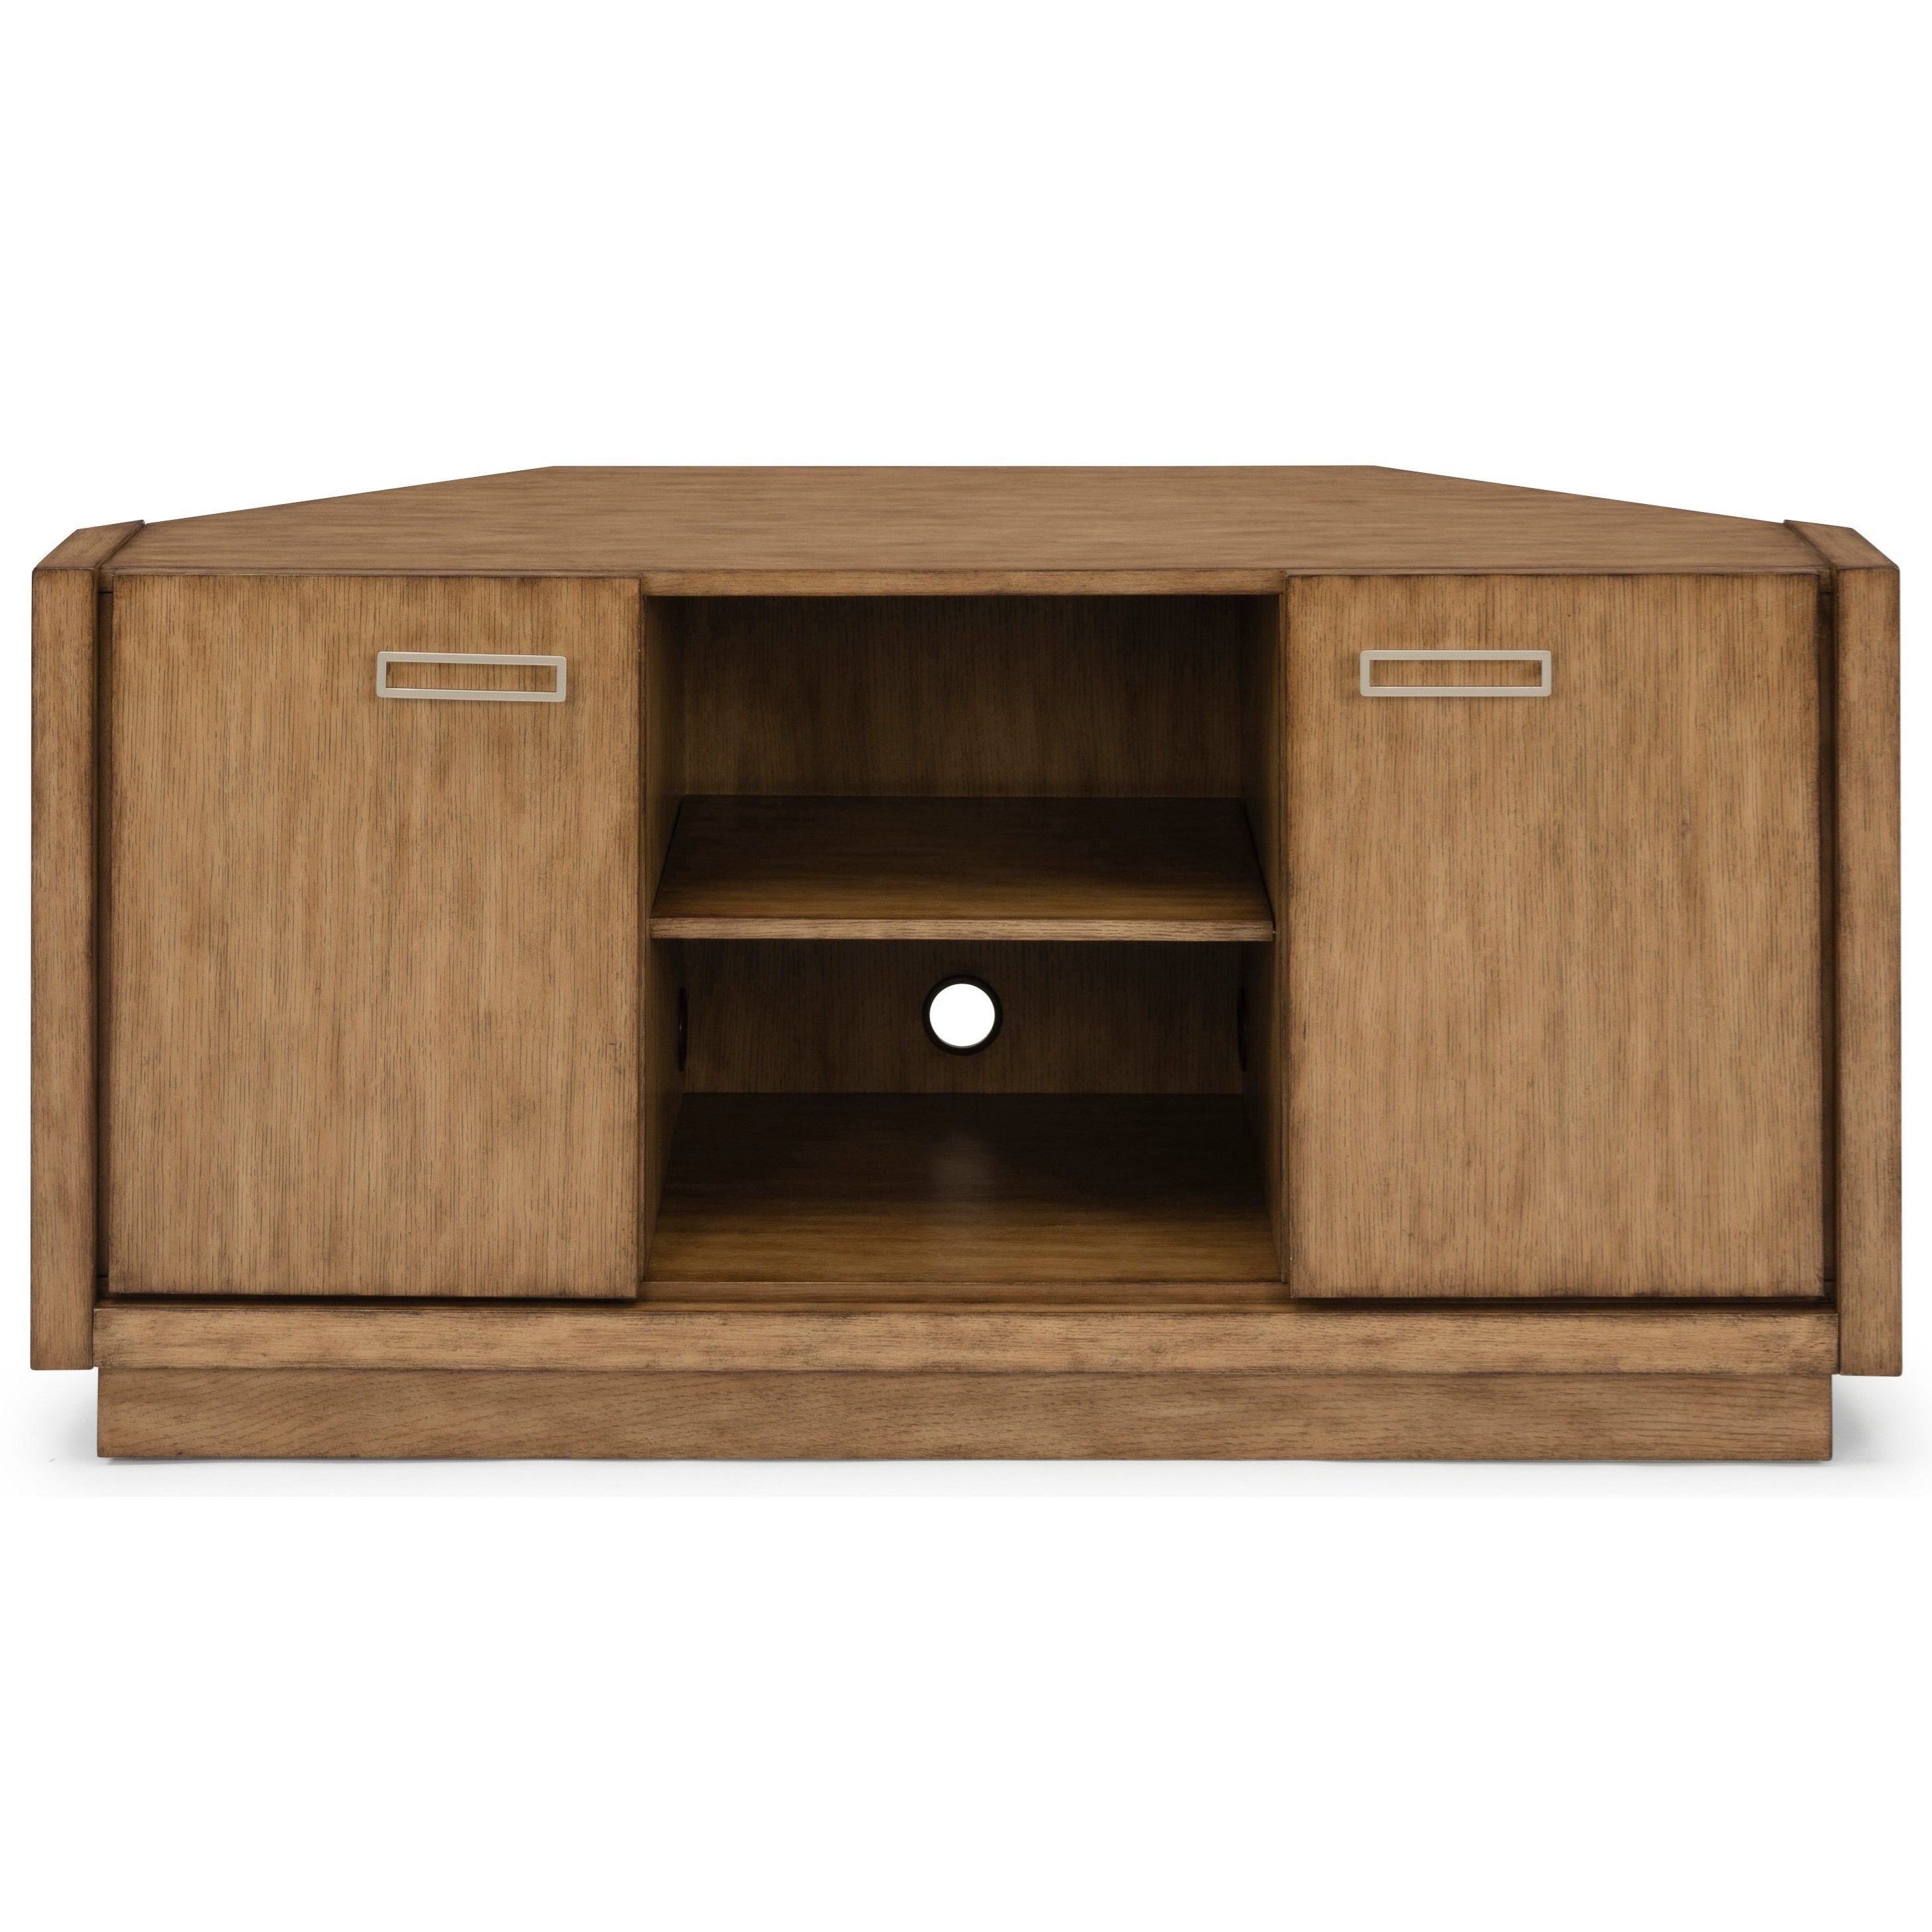 Big Sur Corner TV Stand by Homestyles at Suburban Furniture